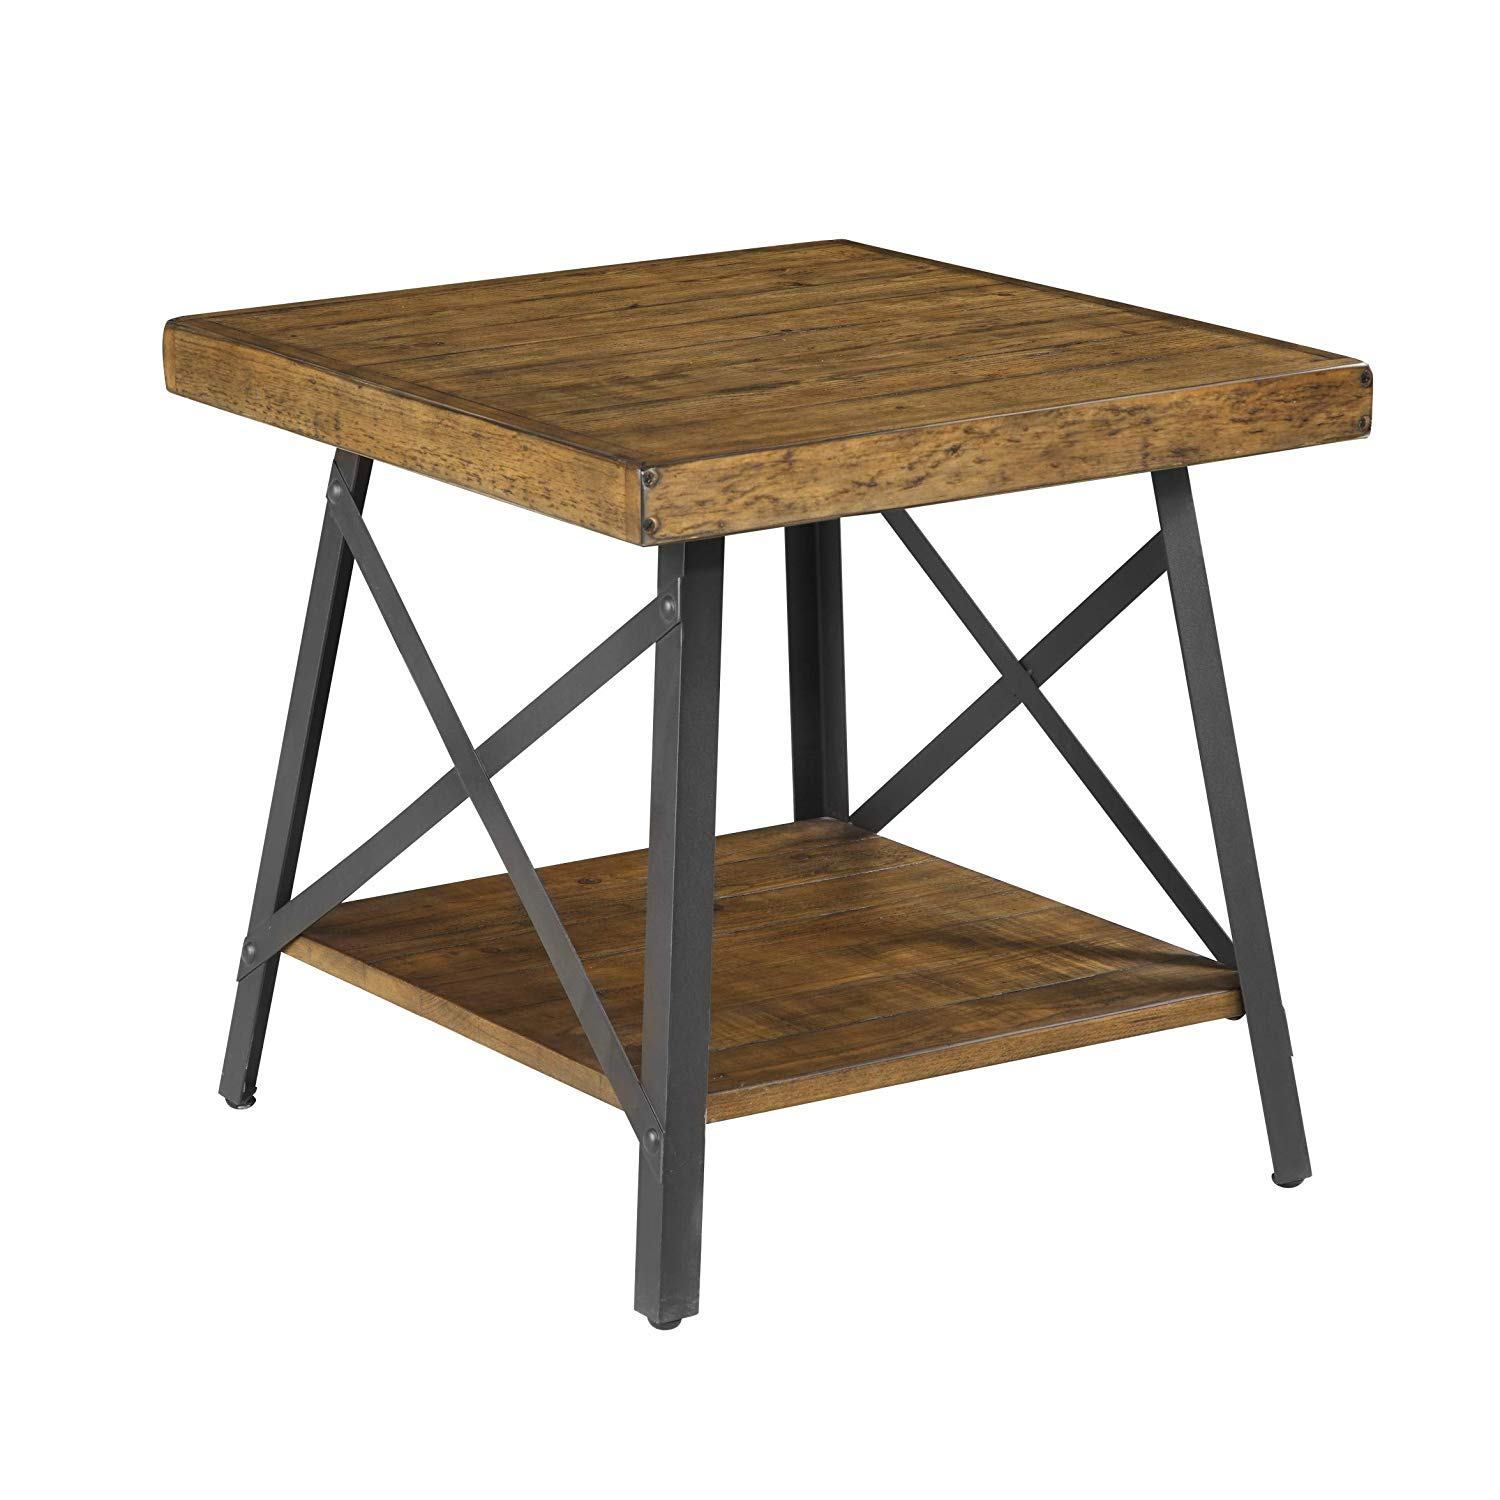 emerald home chandler rustic wood end table with solid white accent top metal base and open storage shelf kitchen dining lucite tables nightstands black lamp for living room oak